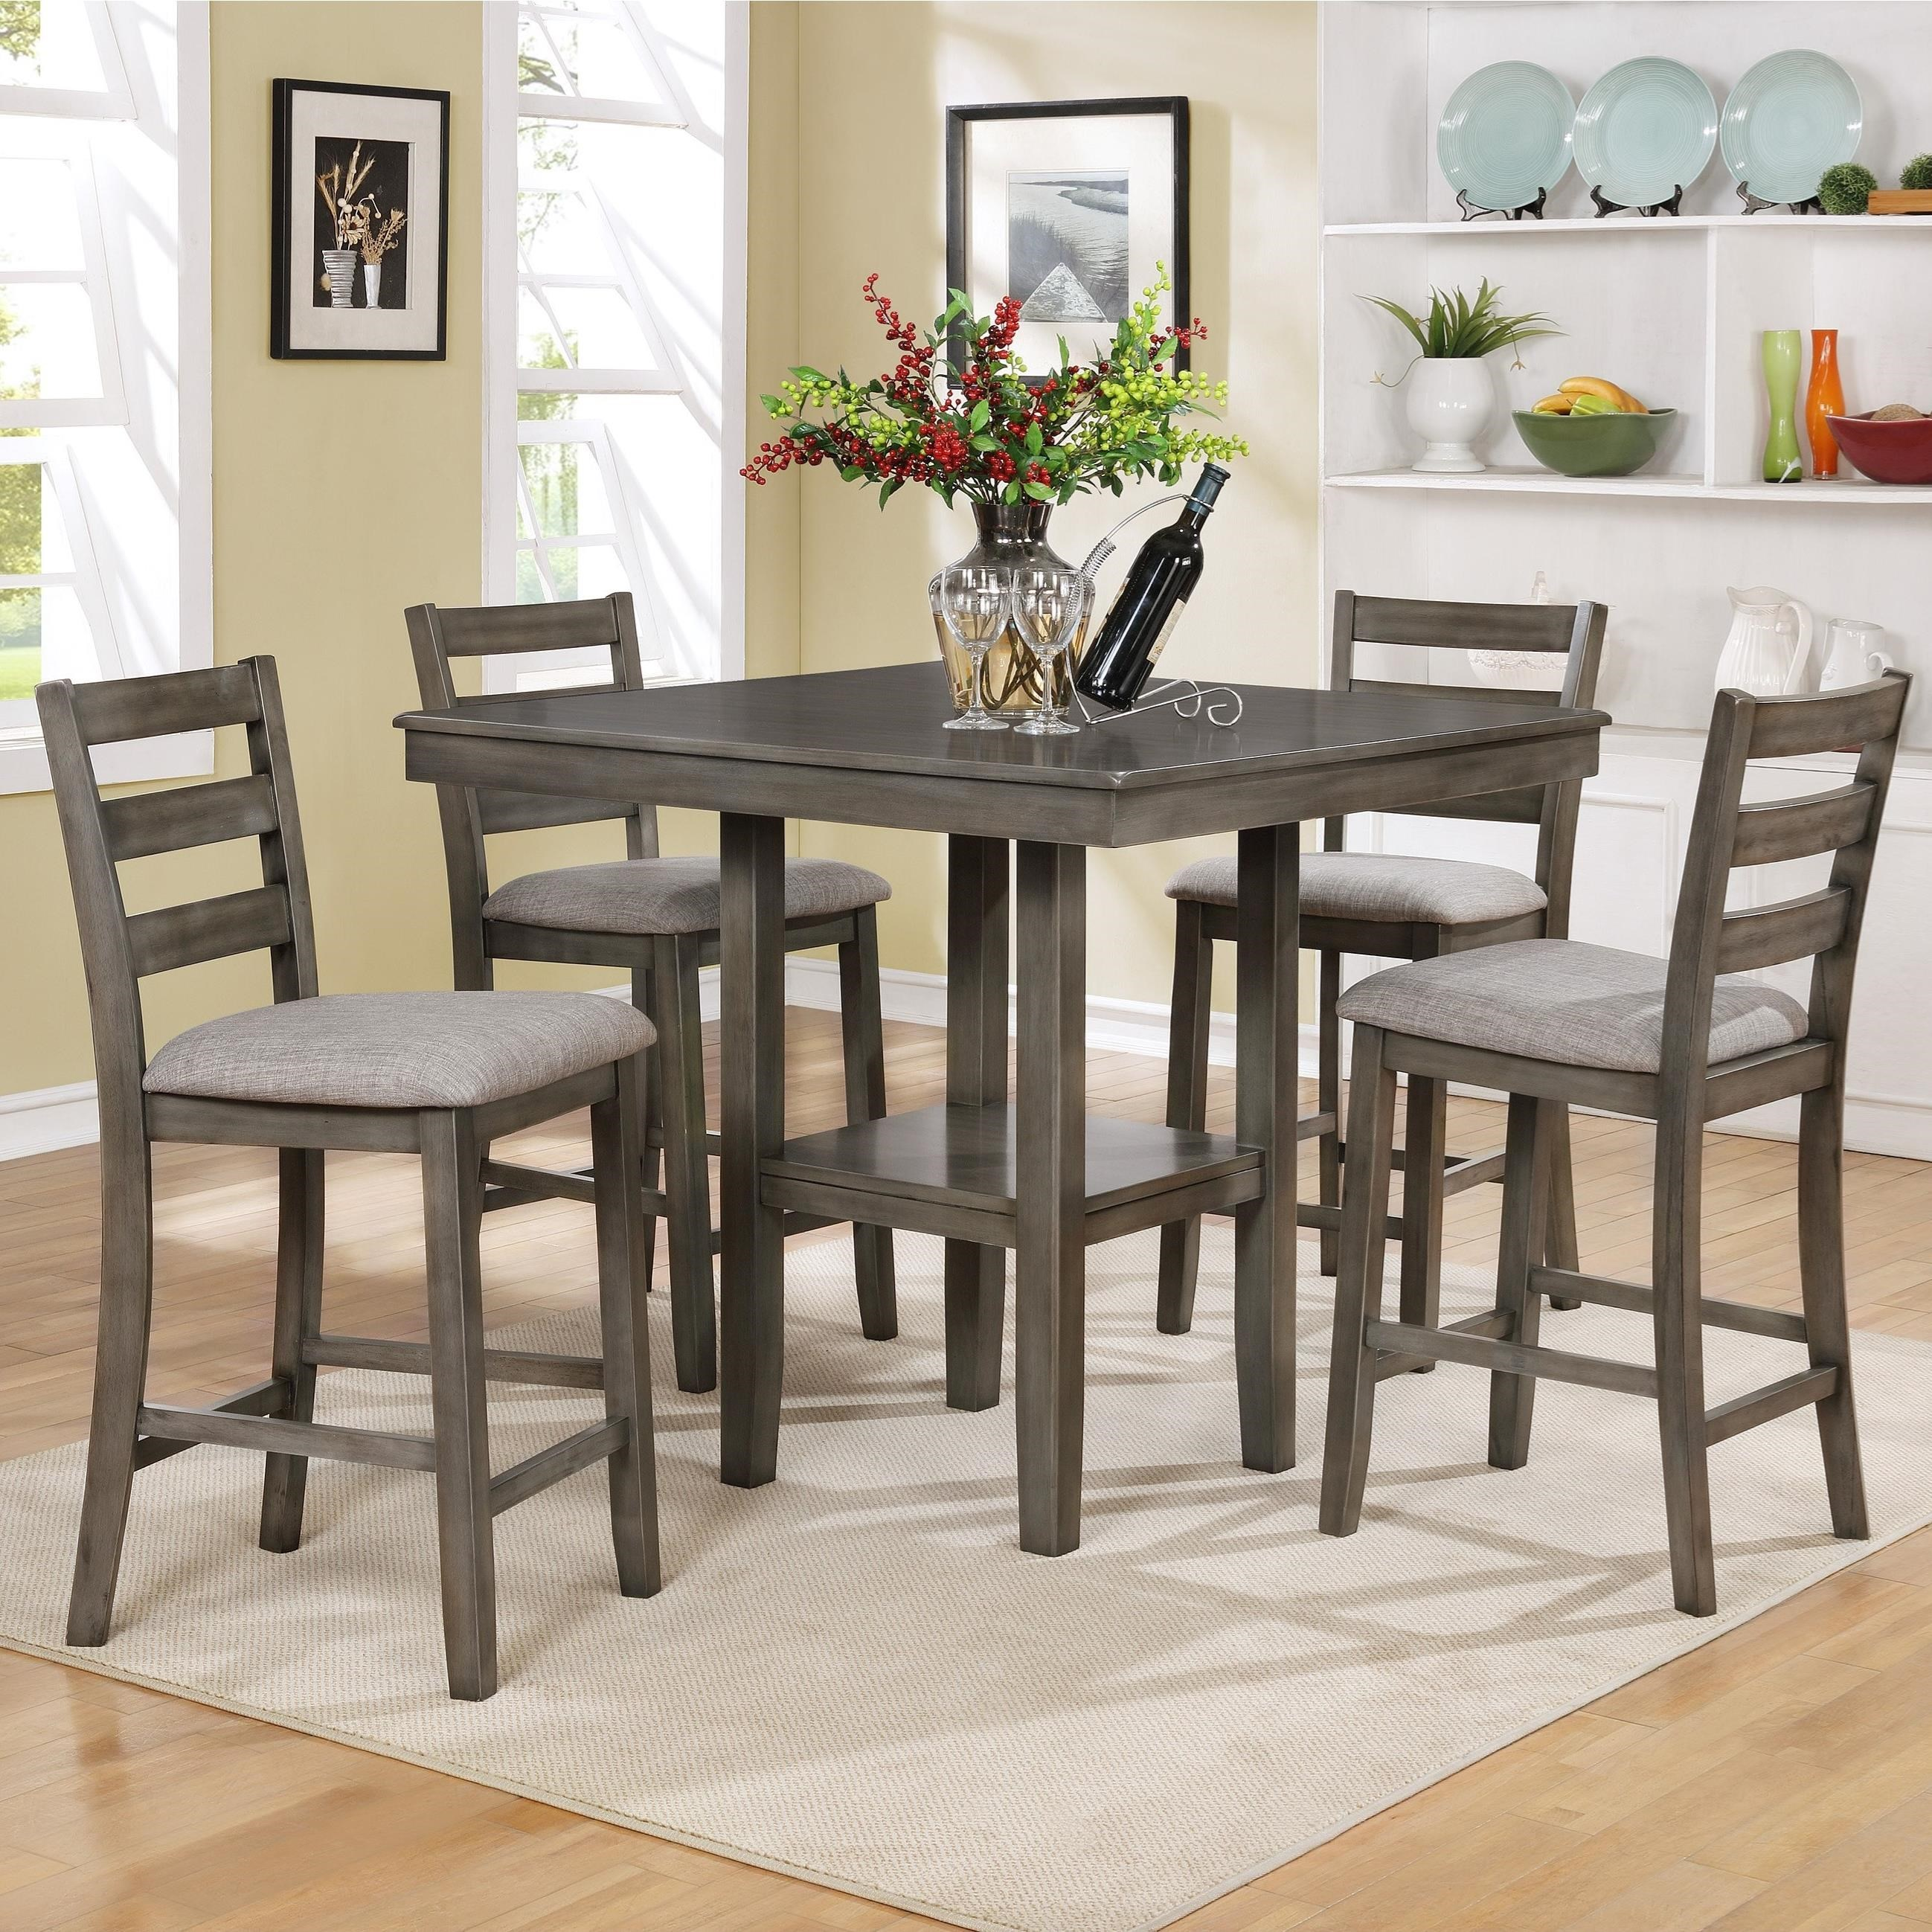 Belfort Essentials Tahoe5 Piece Counter Height Table And Chairs Set ...